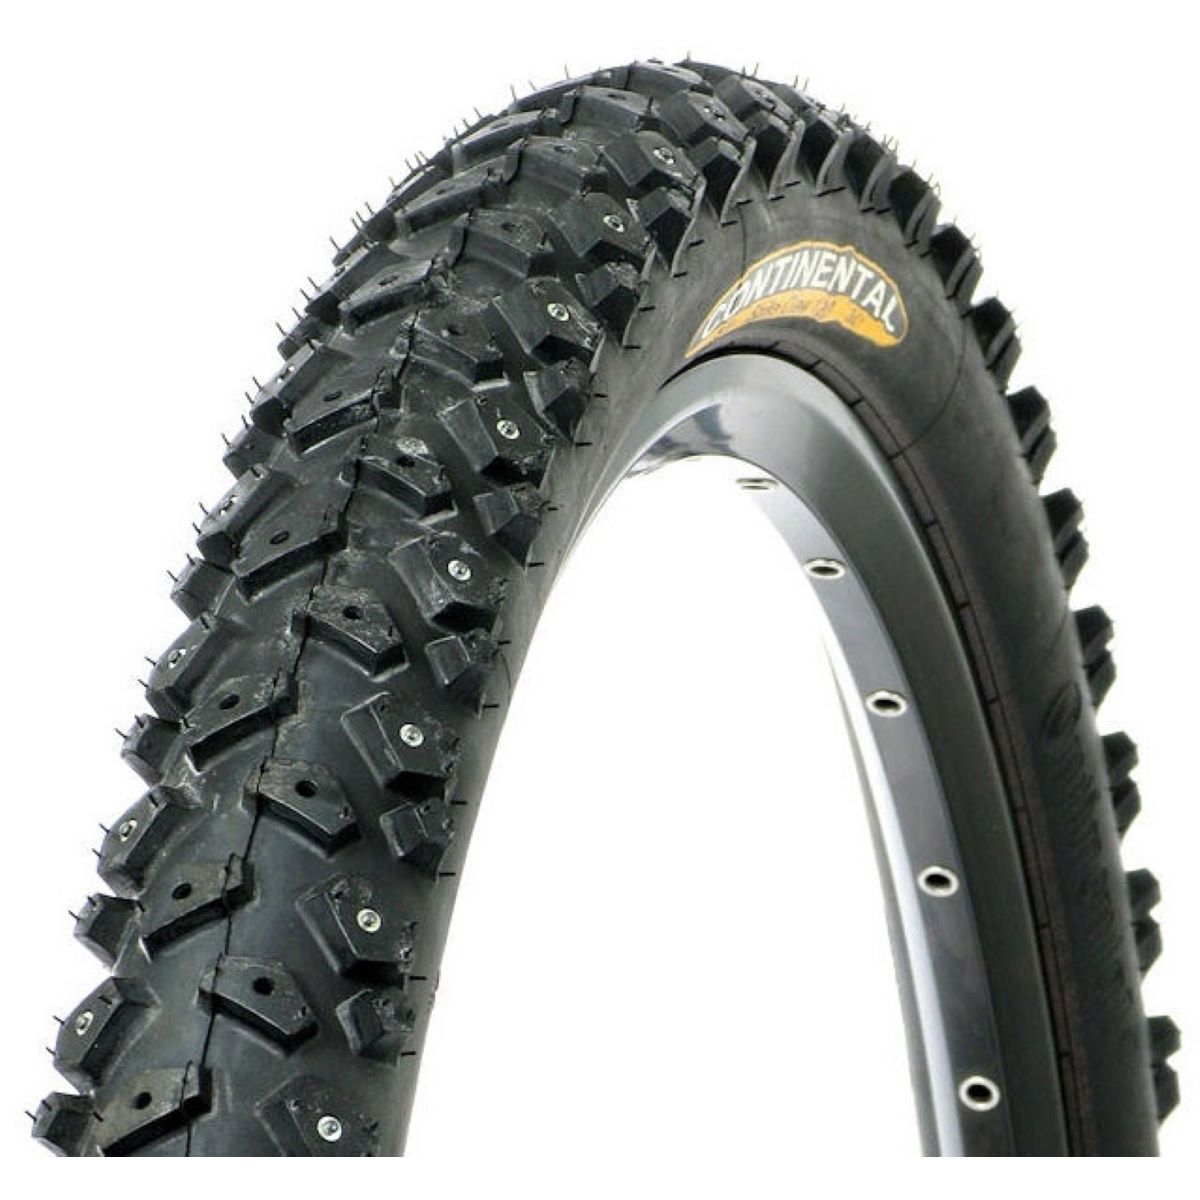 Continental Continental Spike Claw 120 Mountain Bike Tyre   Tyres